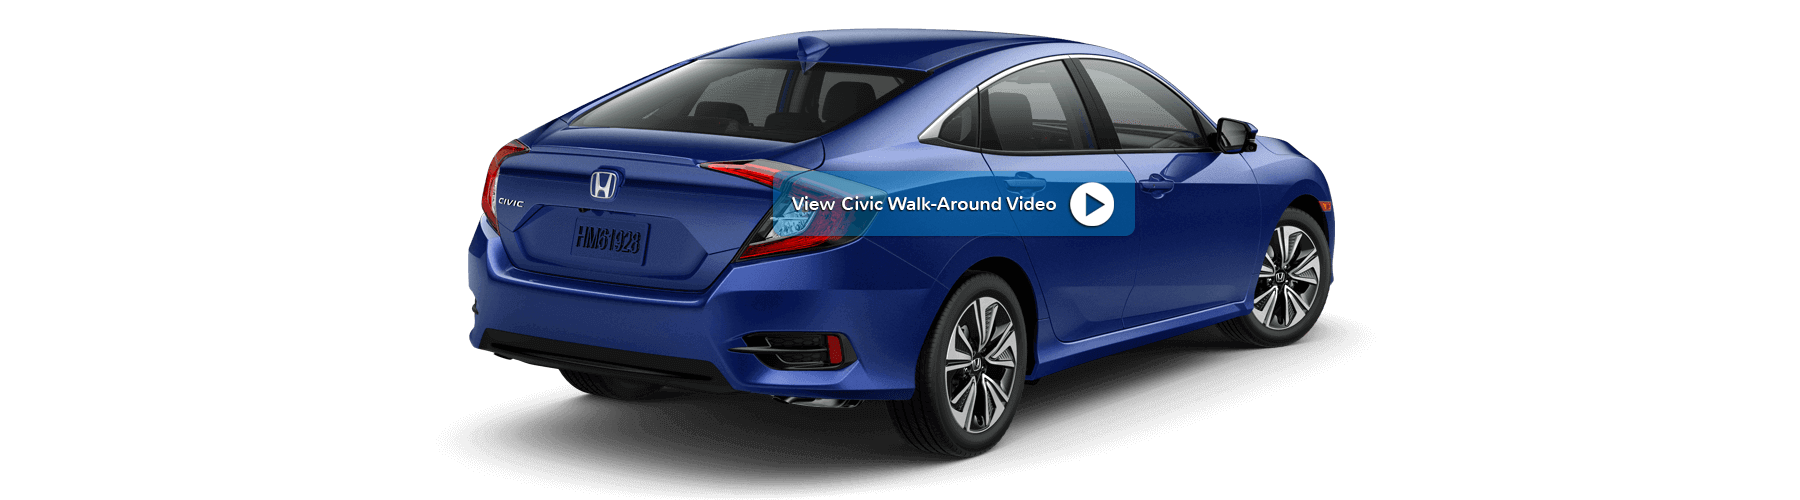 2018 Honda Civic Sedan Rear Angle